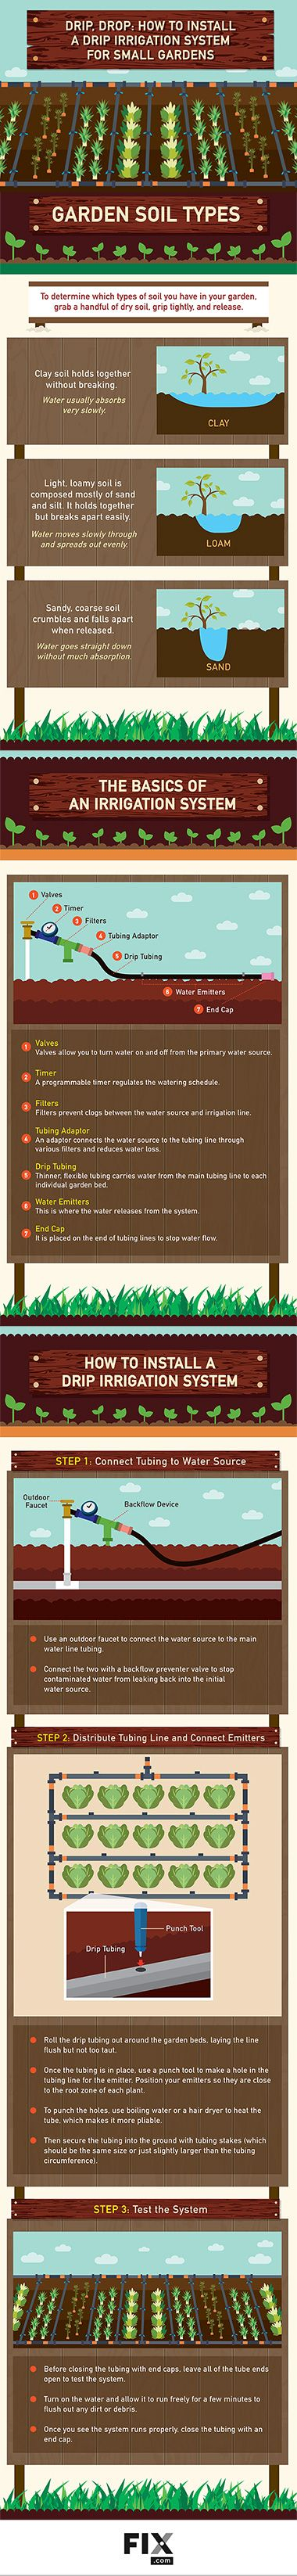 Drip Irrigation | Fix.com